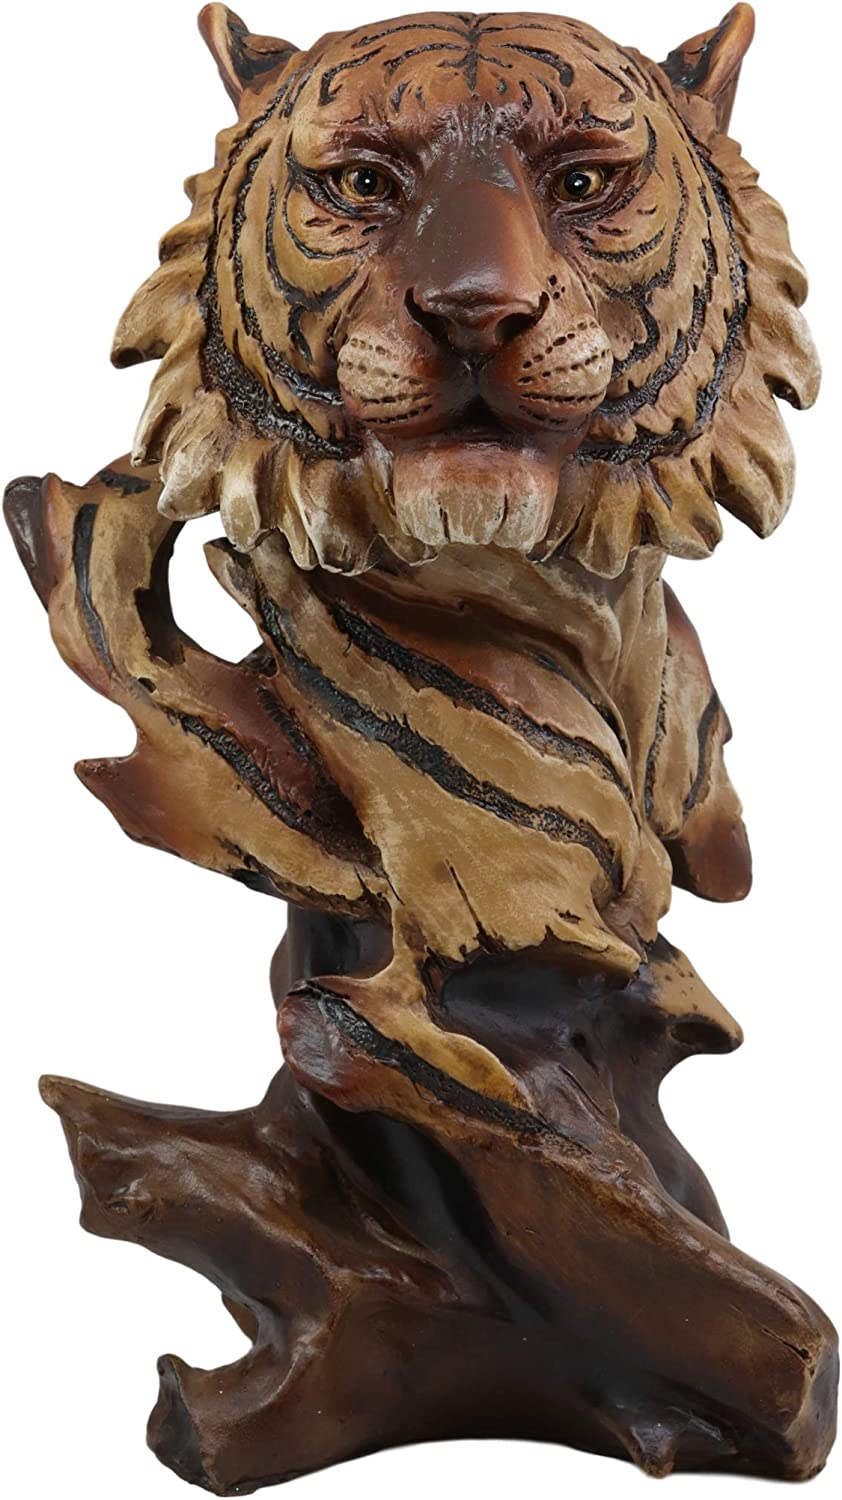 "Ebros Faux Wood Large Jungle Wildlife Orange Bengal Tiger Bust Statue 11"" Tall Apex Predator Giant Cat Tiger Or Tigress Decorative Figurine (Orange Bengal Tiger)"